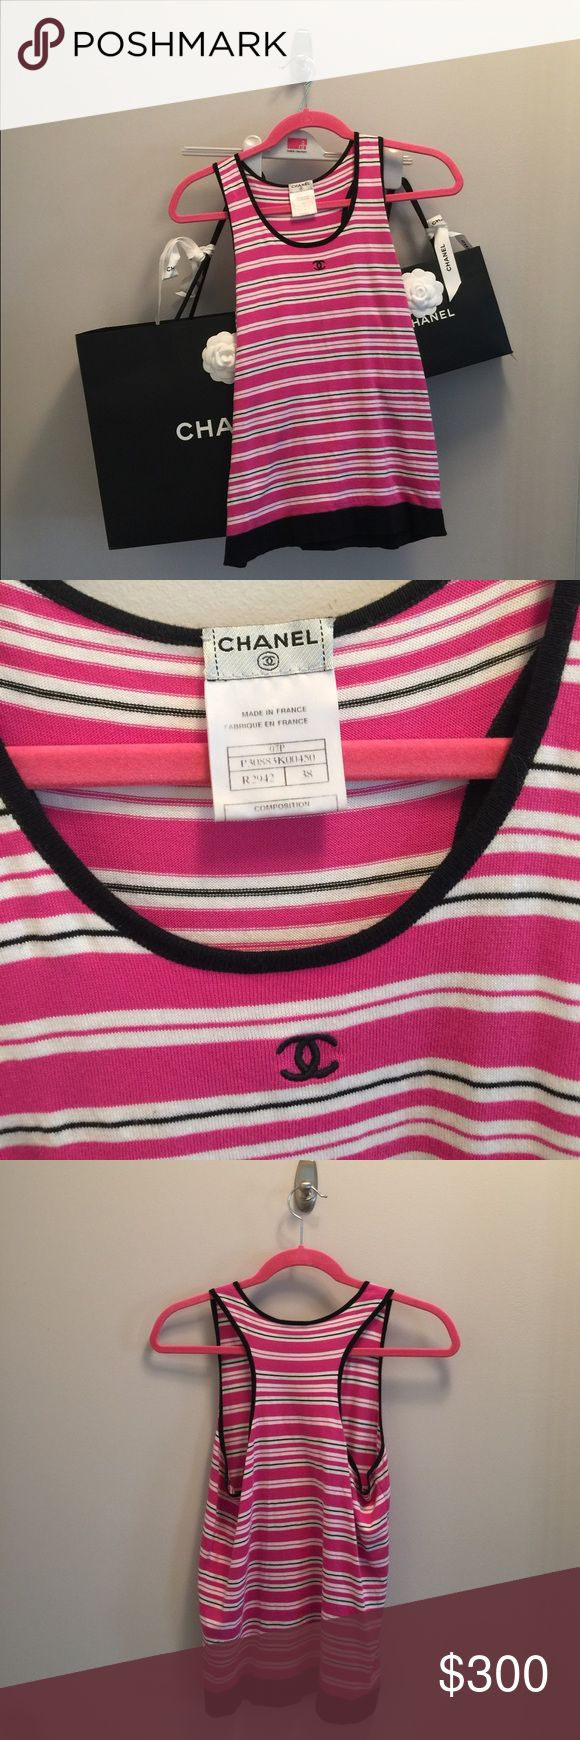 Chanel tank This is not America size. Please make sure to ask questions before buying. Fits like a 4. CHANEL Tops